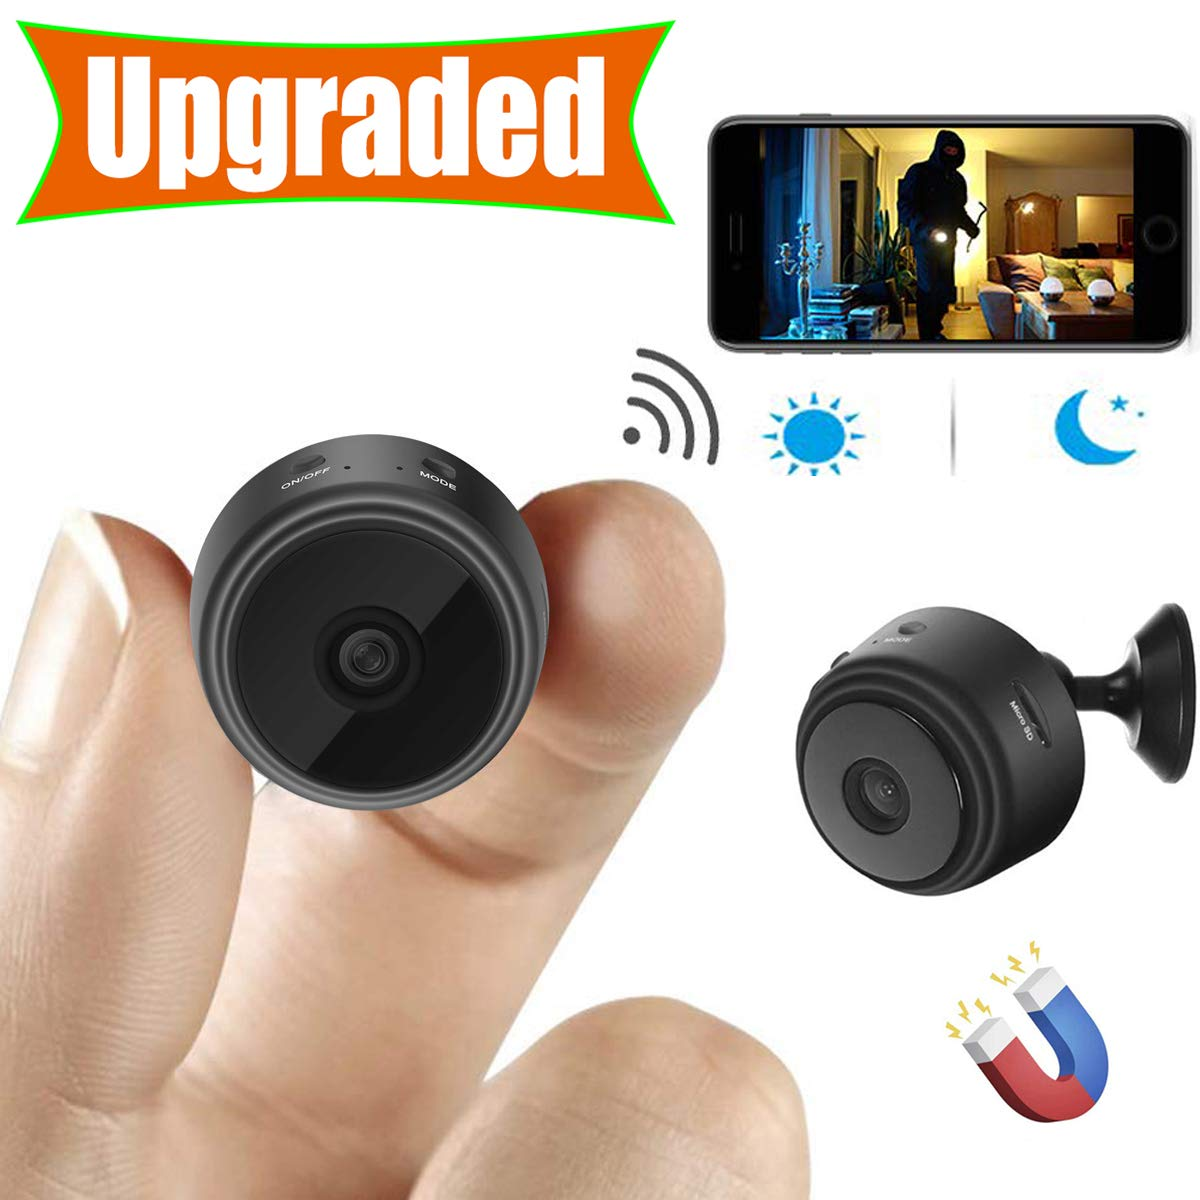 [Upgraded] Spy Camera Wireless Hidden Cameras Mini WiFi Cam HD 1080P Small Nanny Cams Home Security Battery Powered Motion Detection Nigh Vision Remote View by Android/iPhone/PC